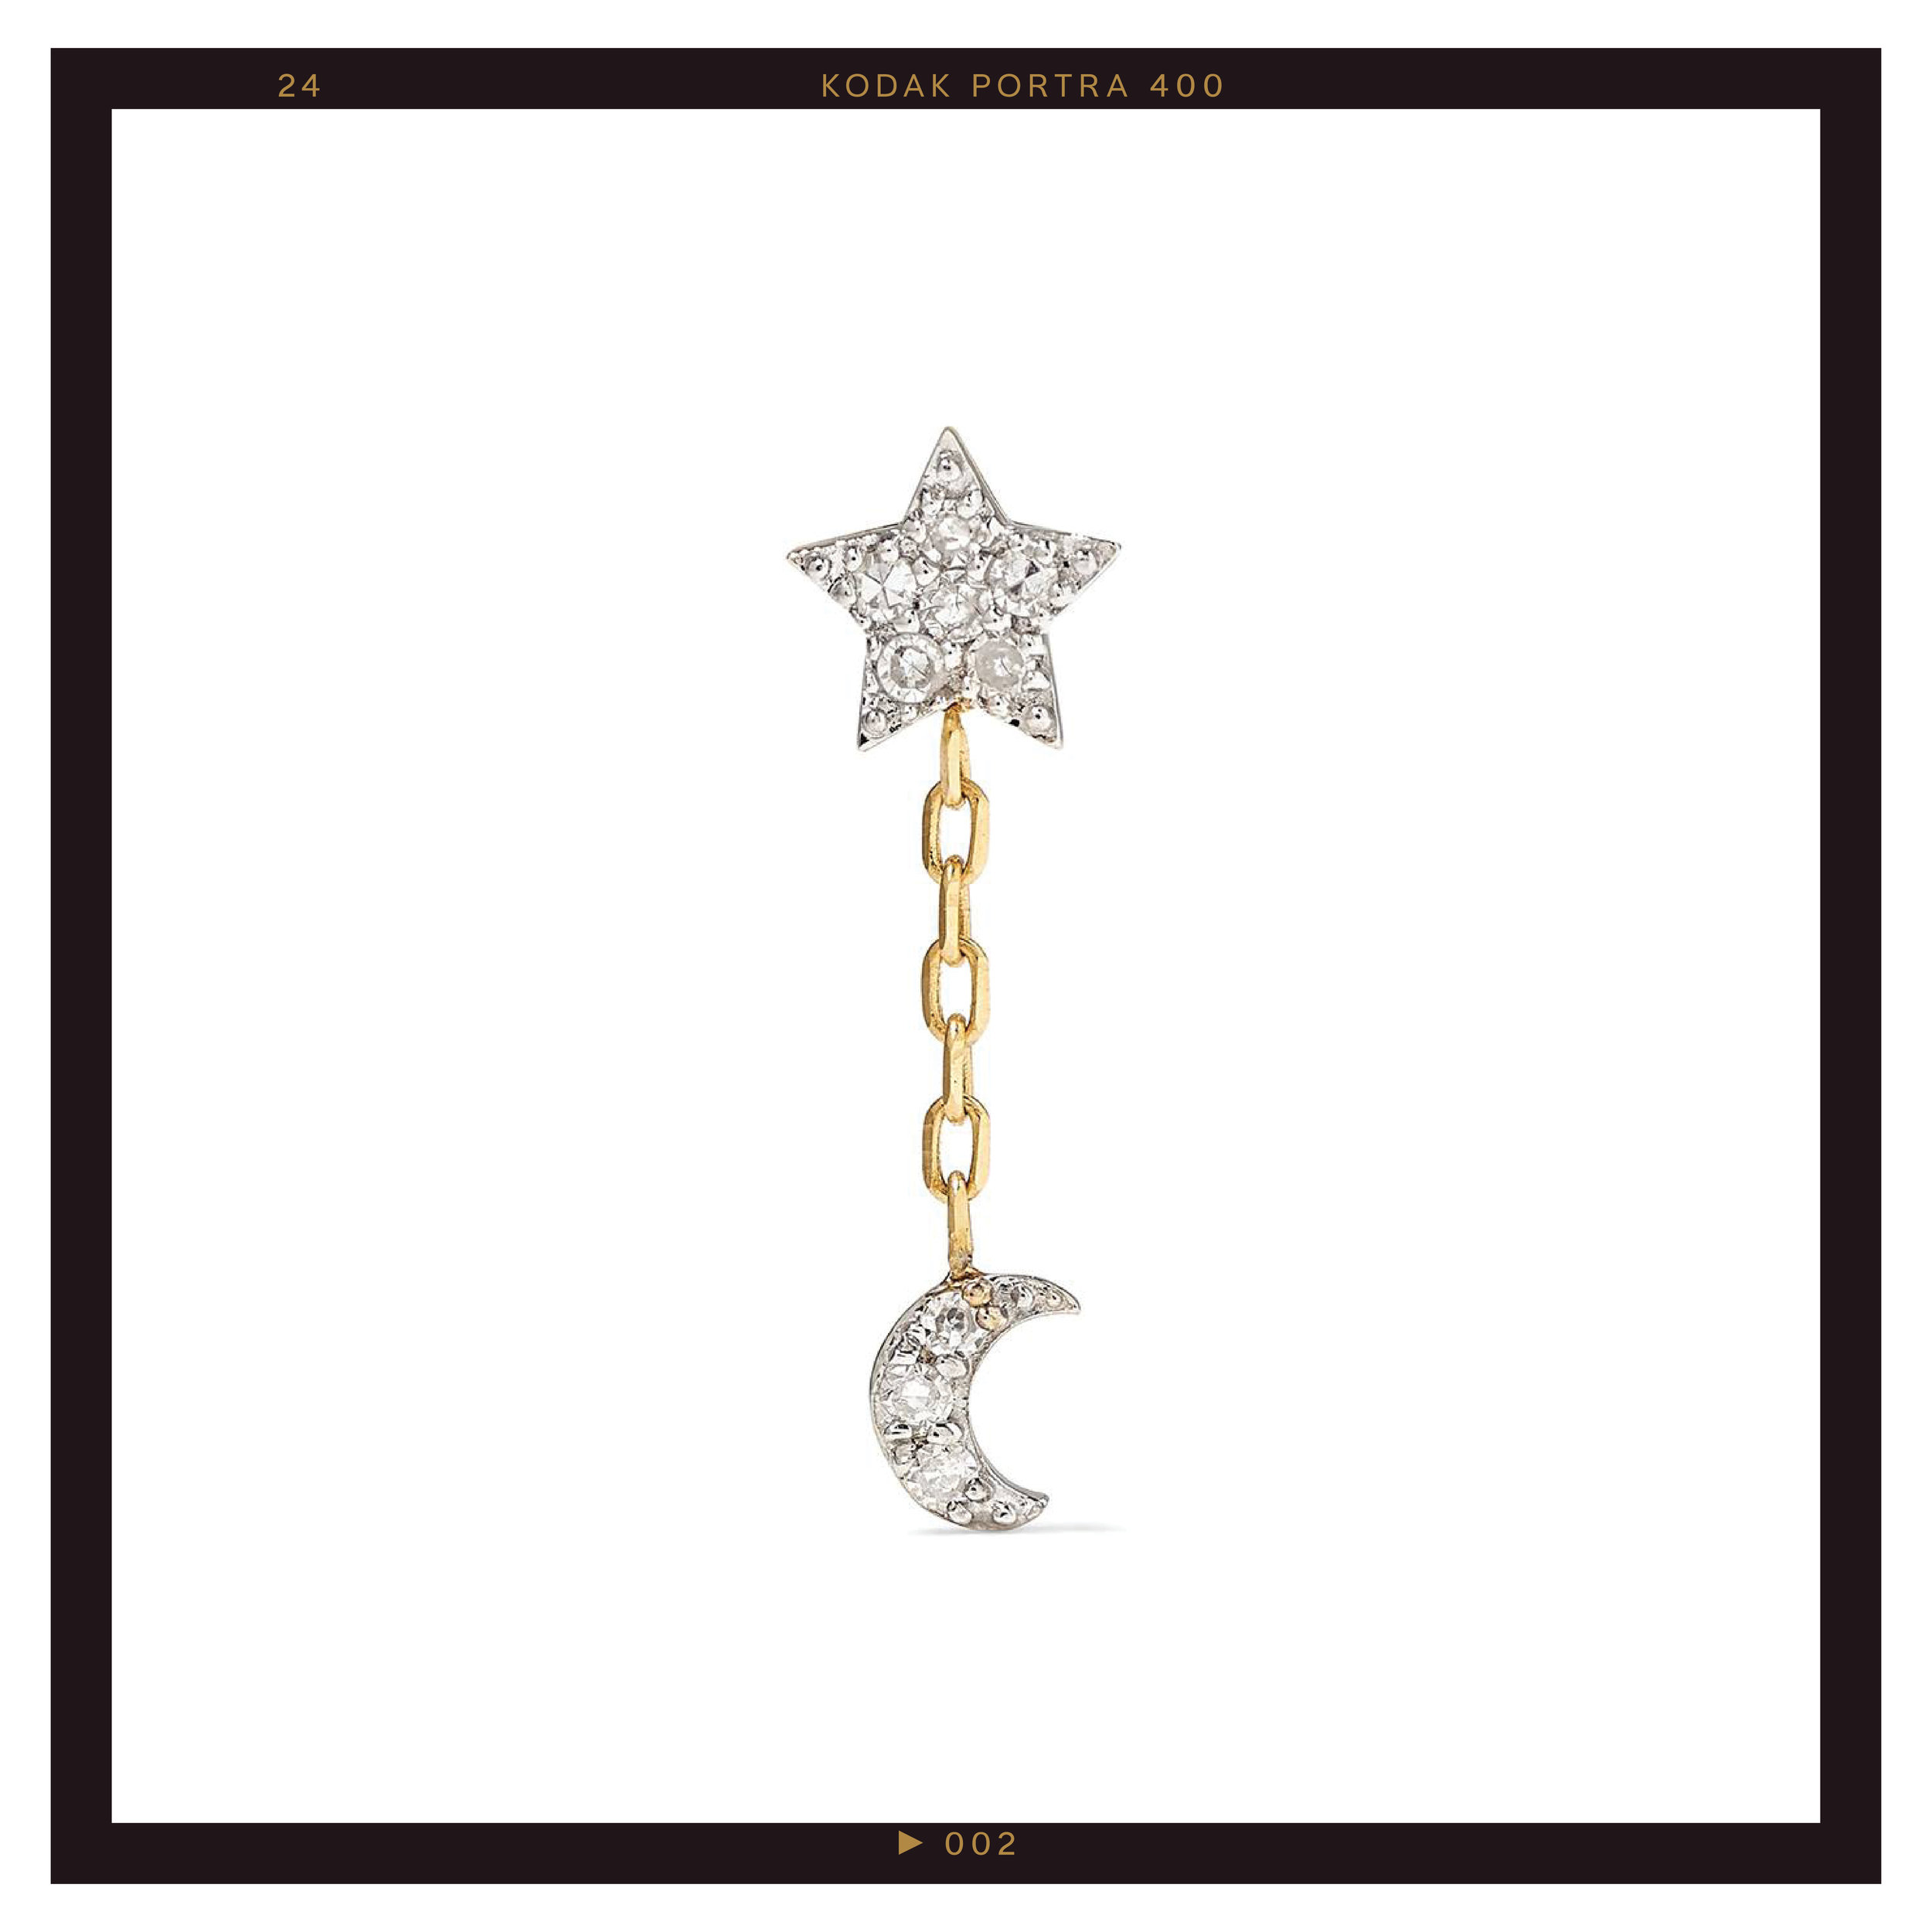 Stone and Strand Gold Diamond Earring ($170)